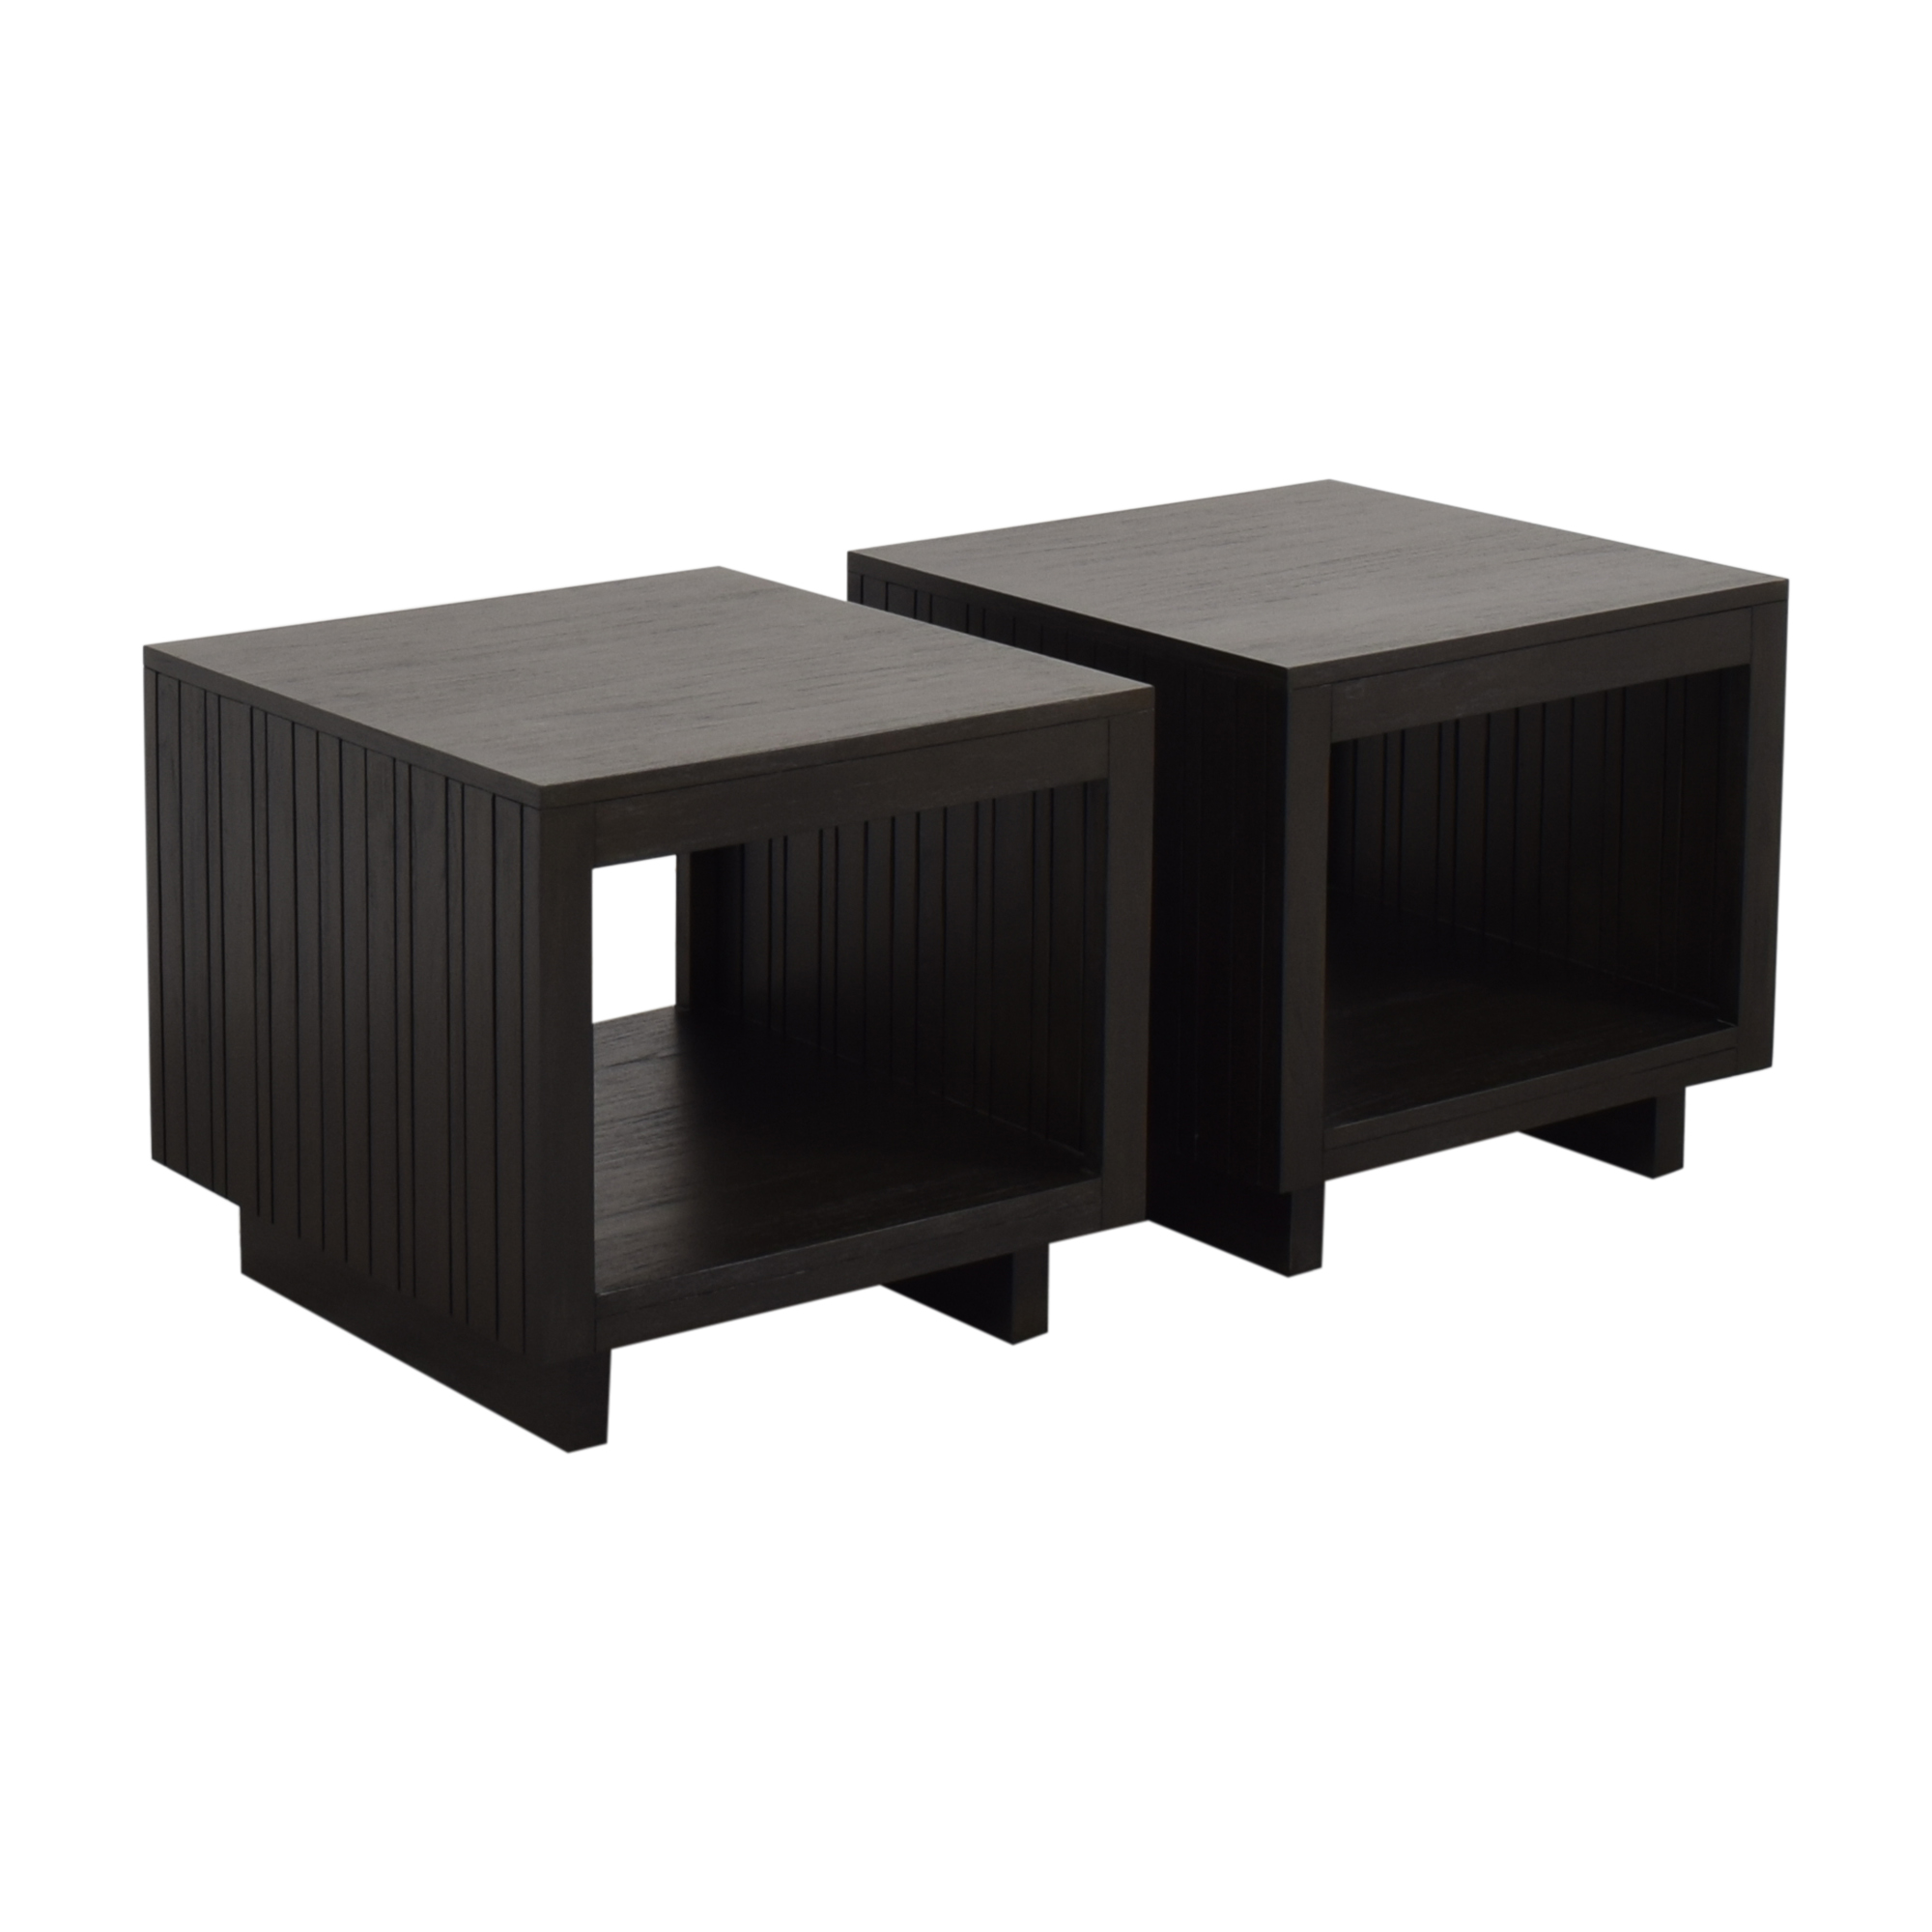 Brownstone Furniture Brownstone Furniture Messina Side Tables for sale